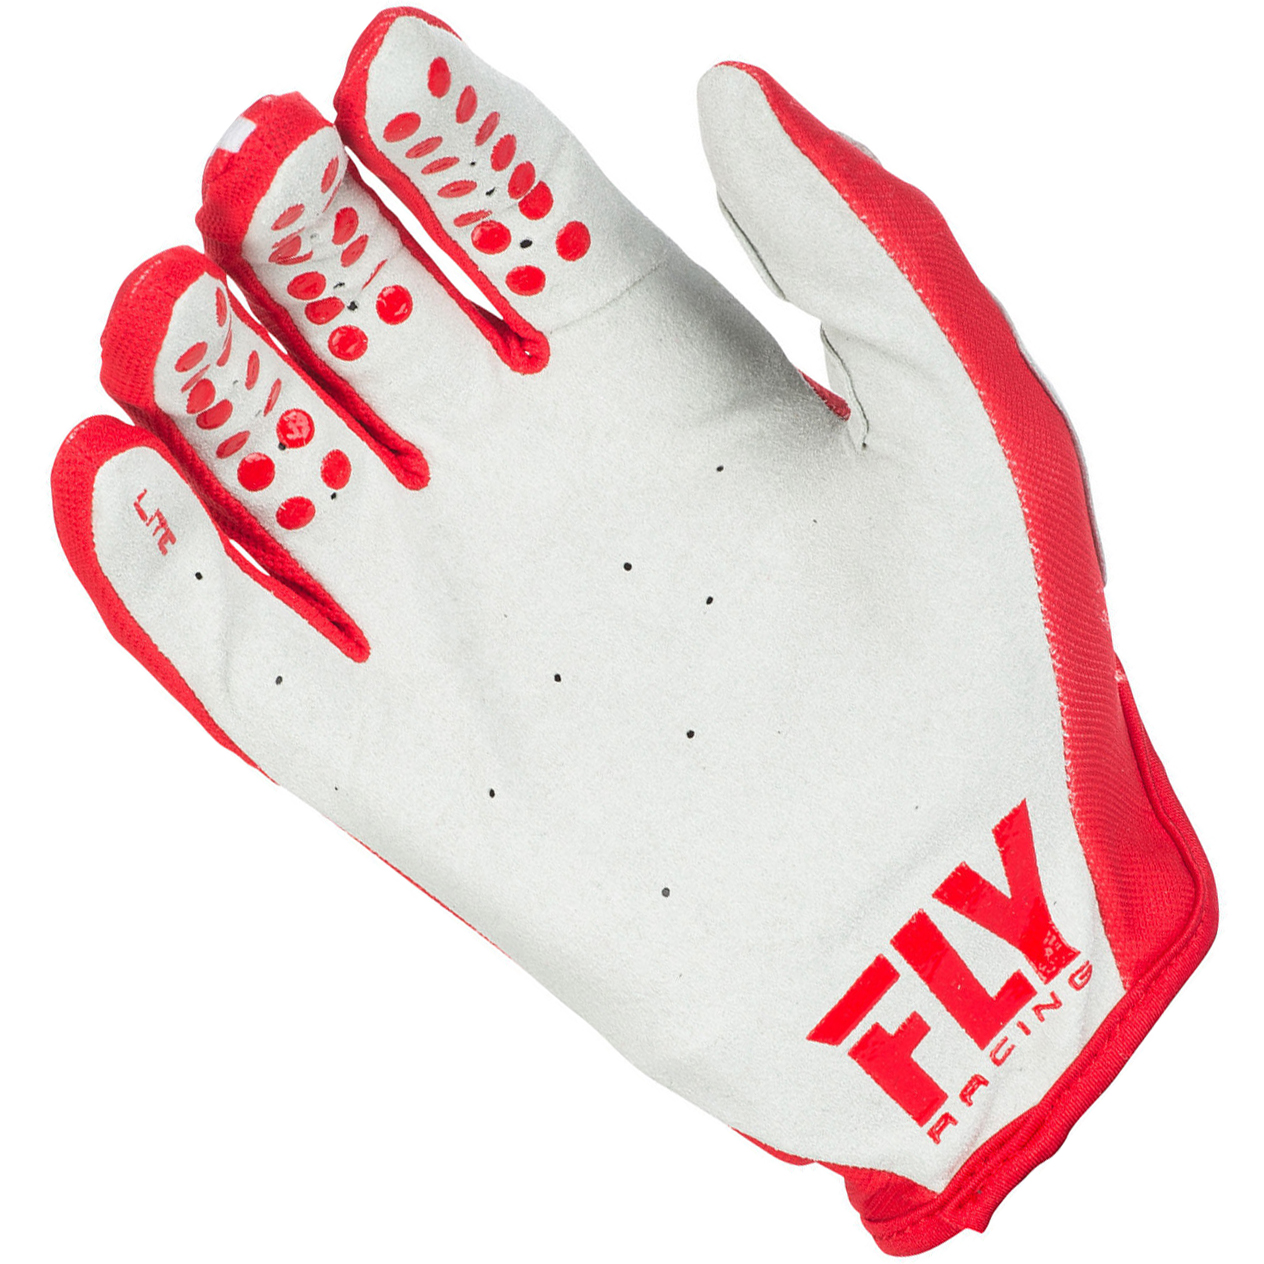 Fly-Racing-2018-Lite-Youth-Motocross-Gloves-Junior-Off-Road-MX-Vented-Race-Glove thumbnail 22